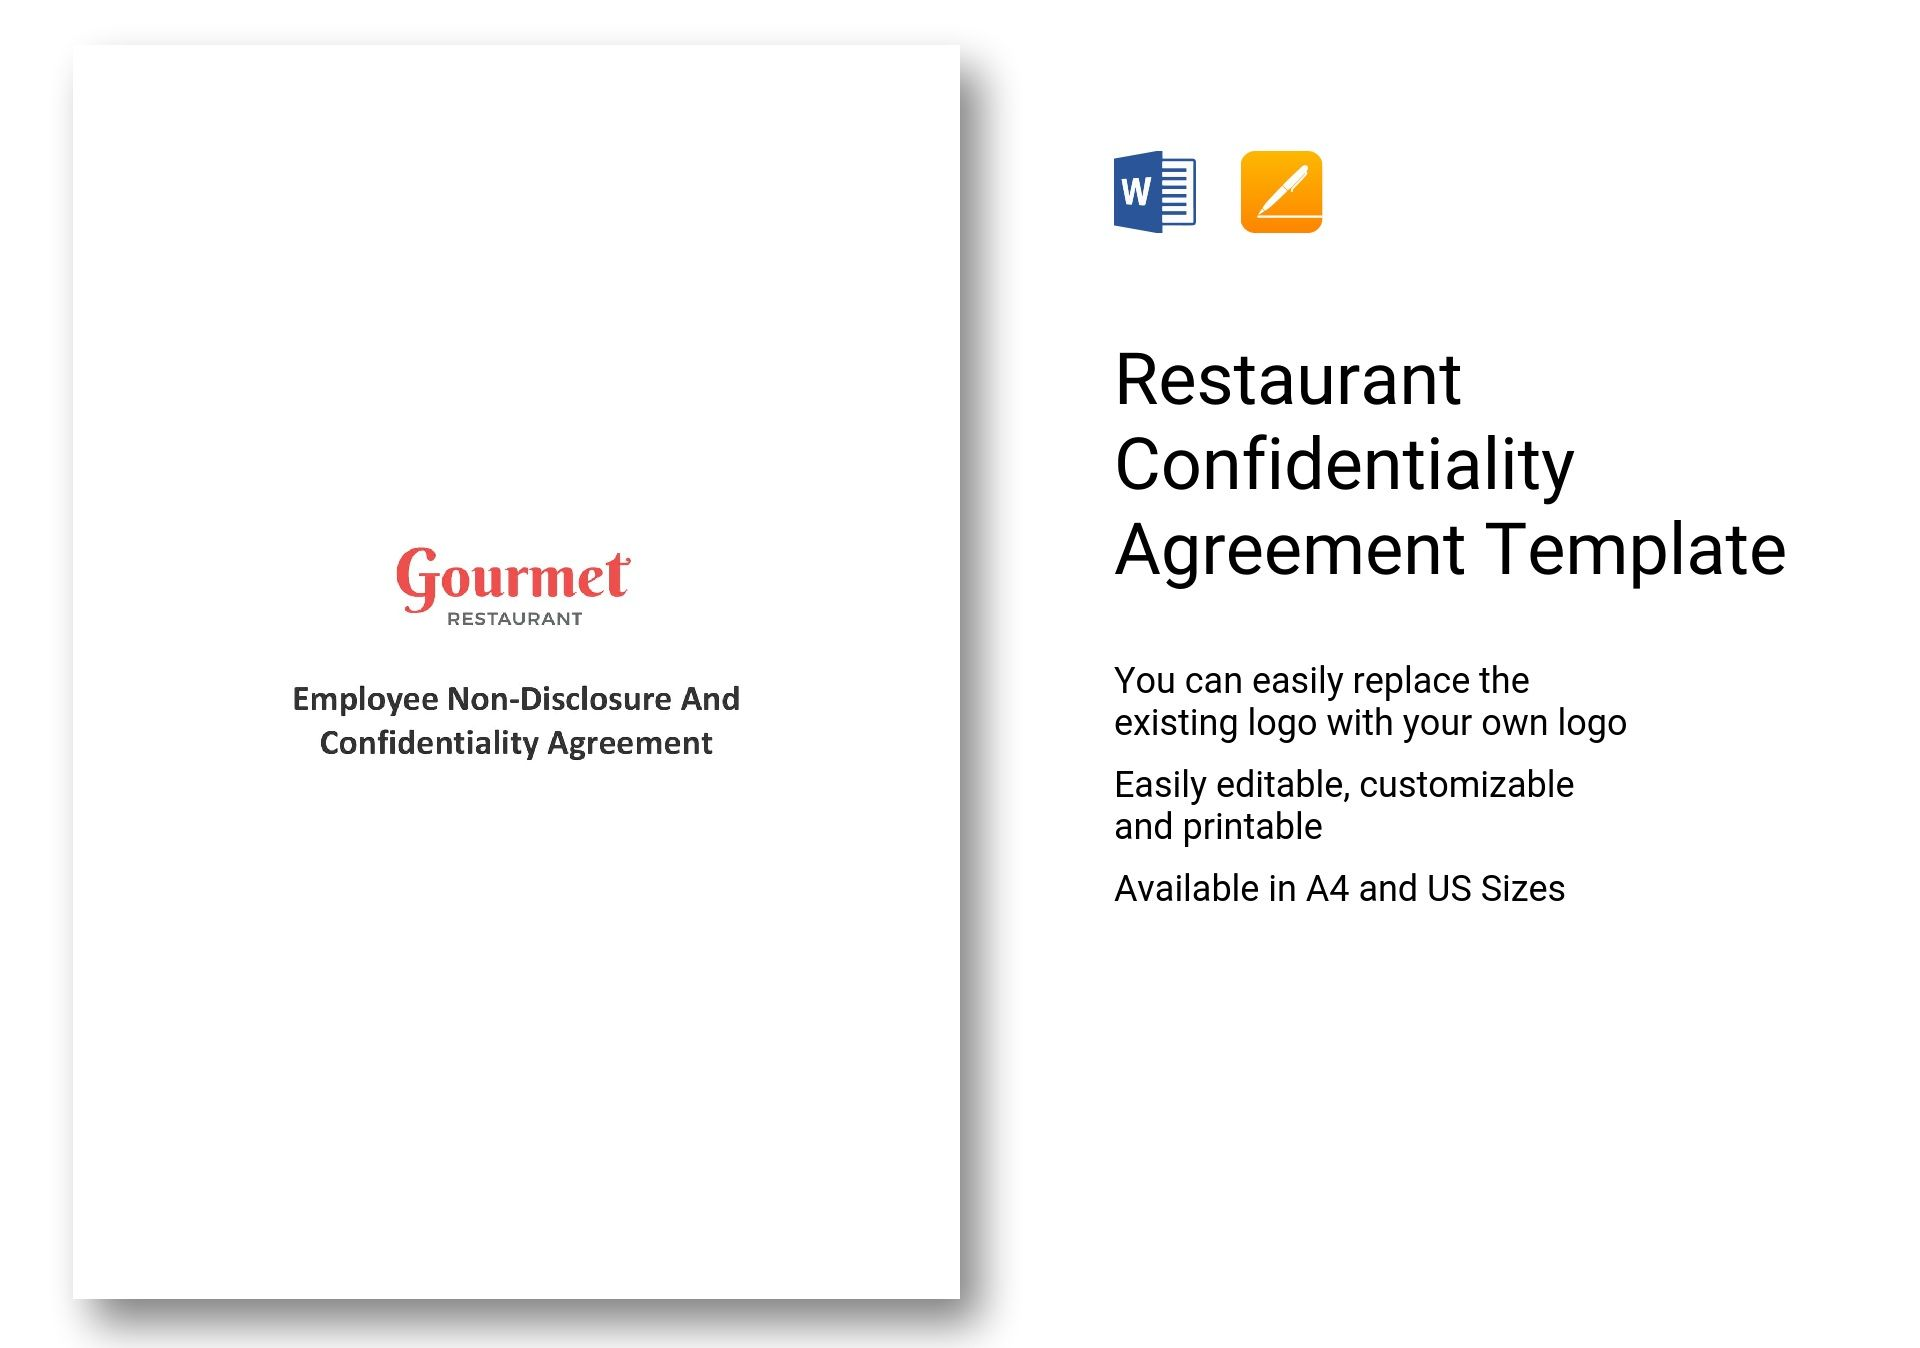 Hr Confidentiality Agreement | Restaurant Confidentiality Agreement Template In Ms Word Pages